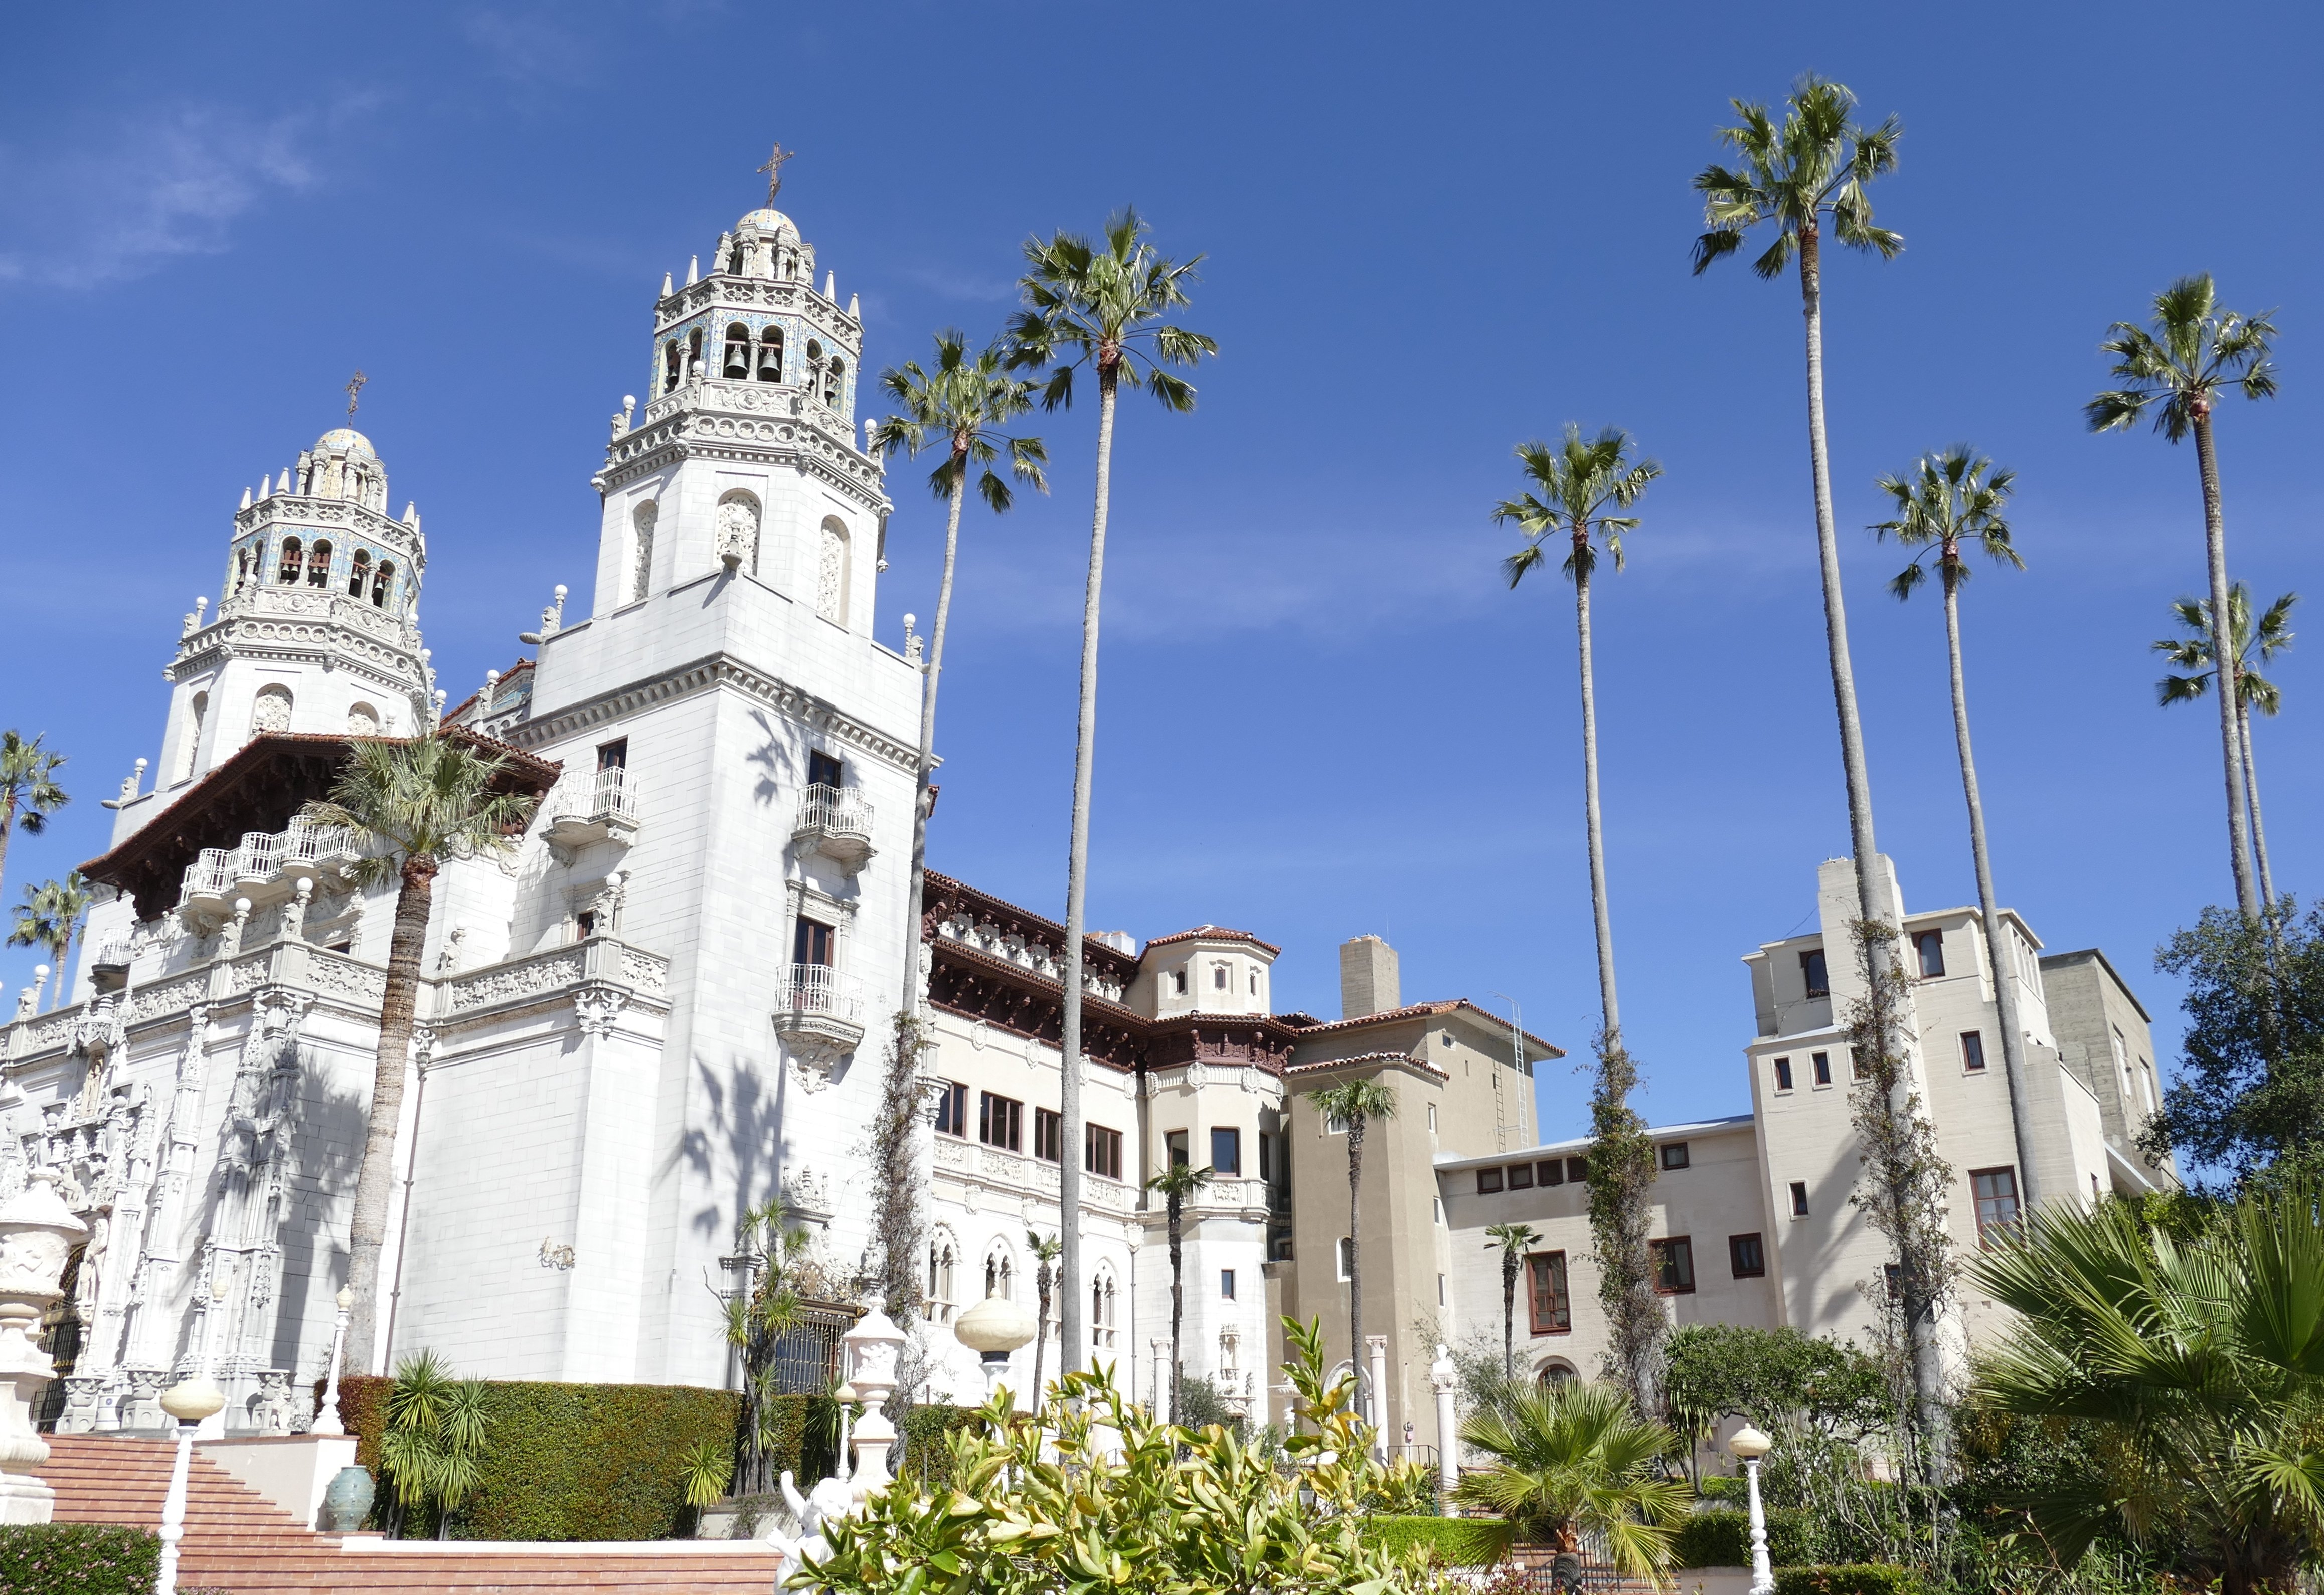 40 Facts About Fabulous Hearst Castle